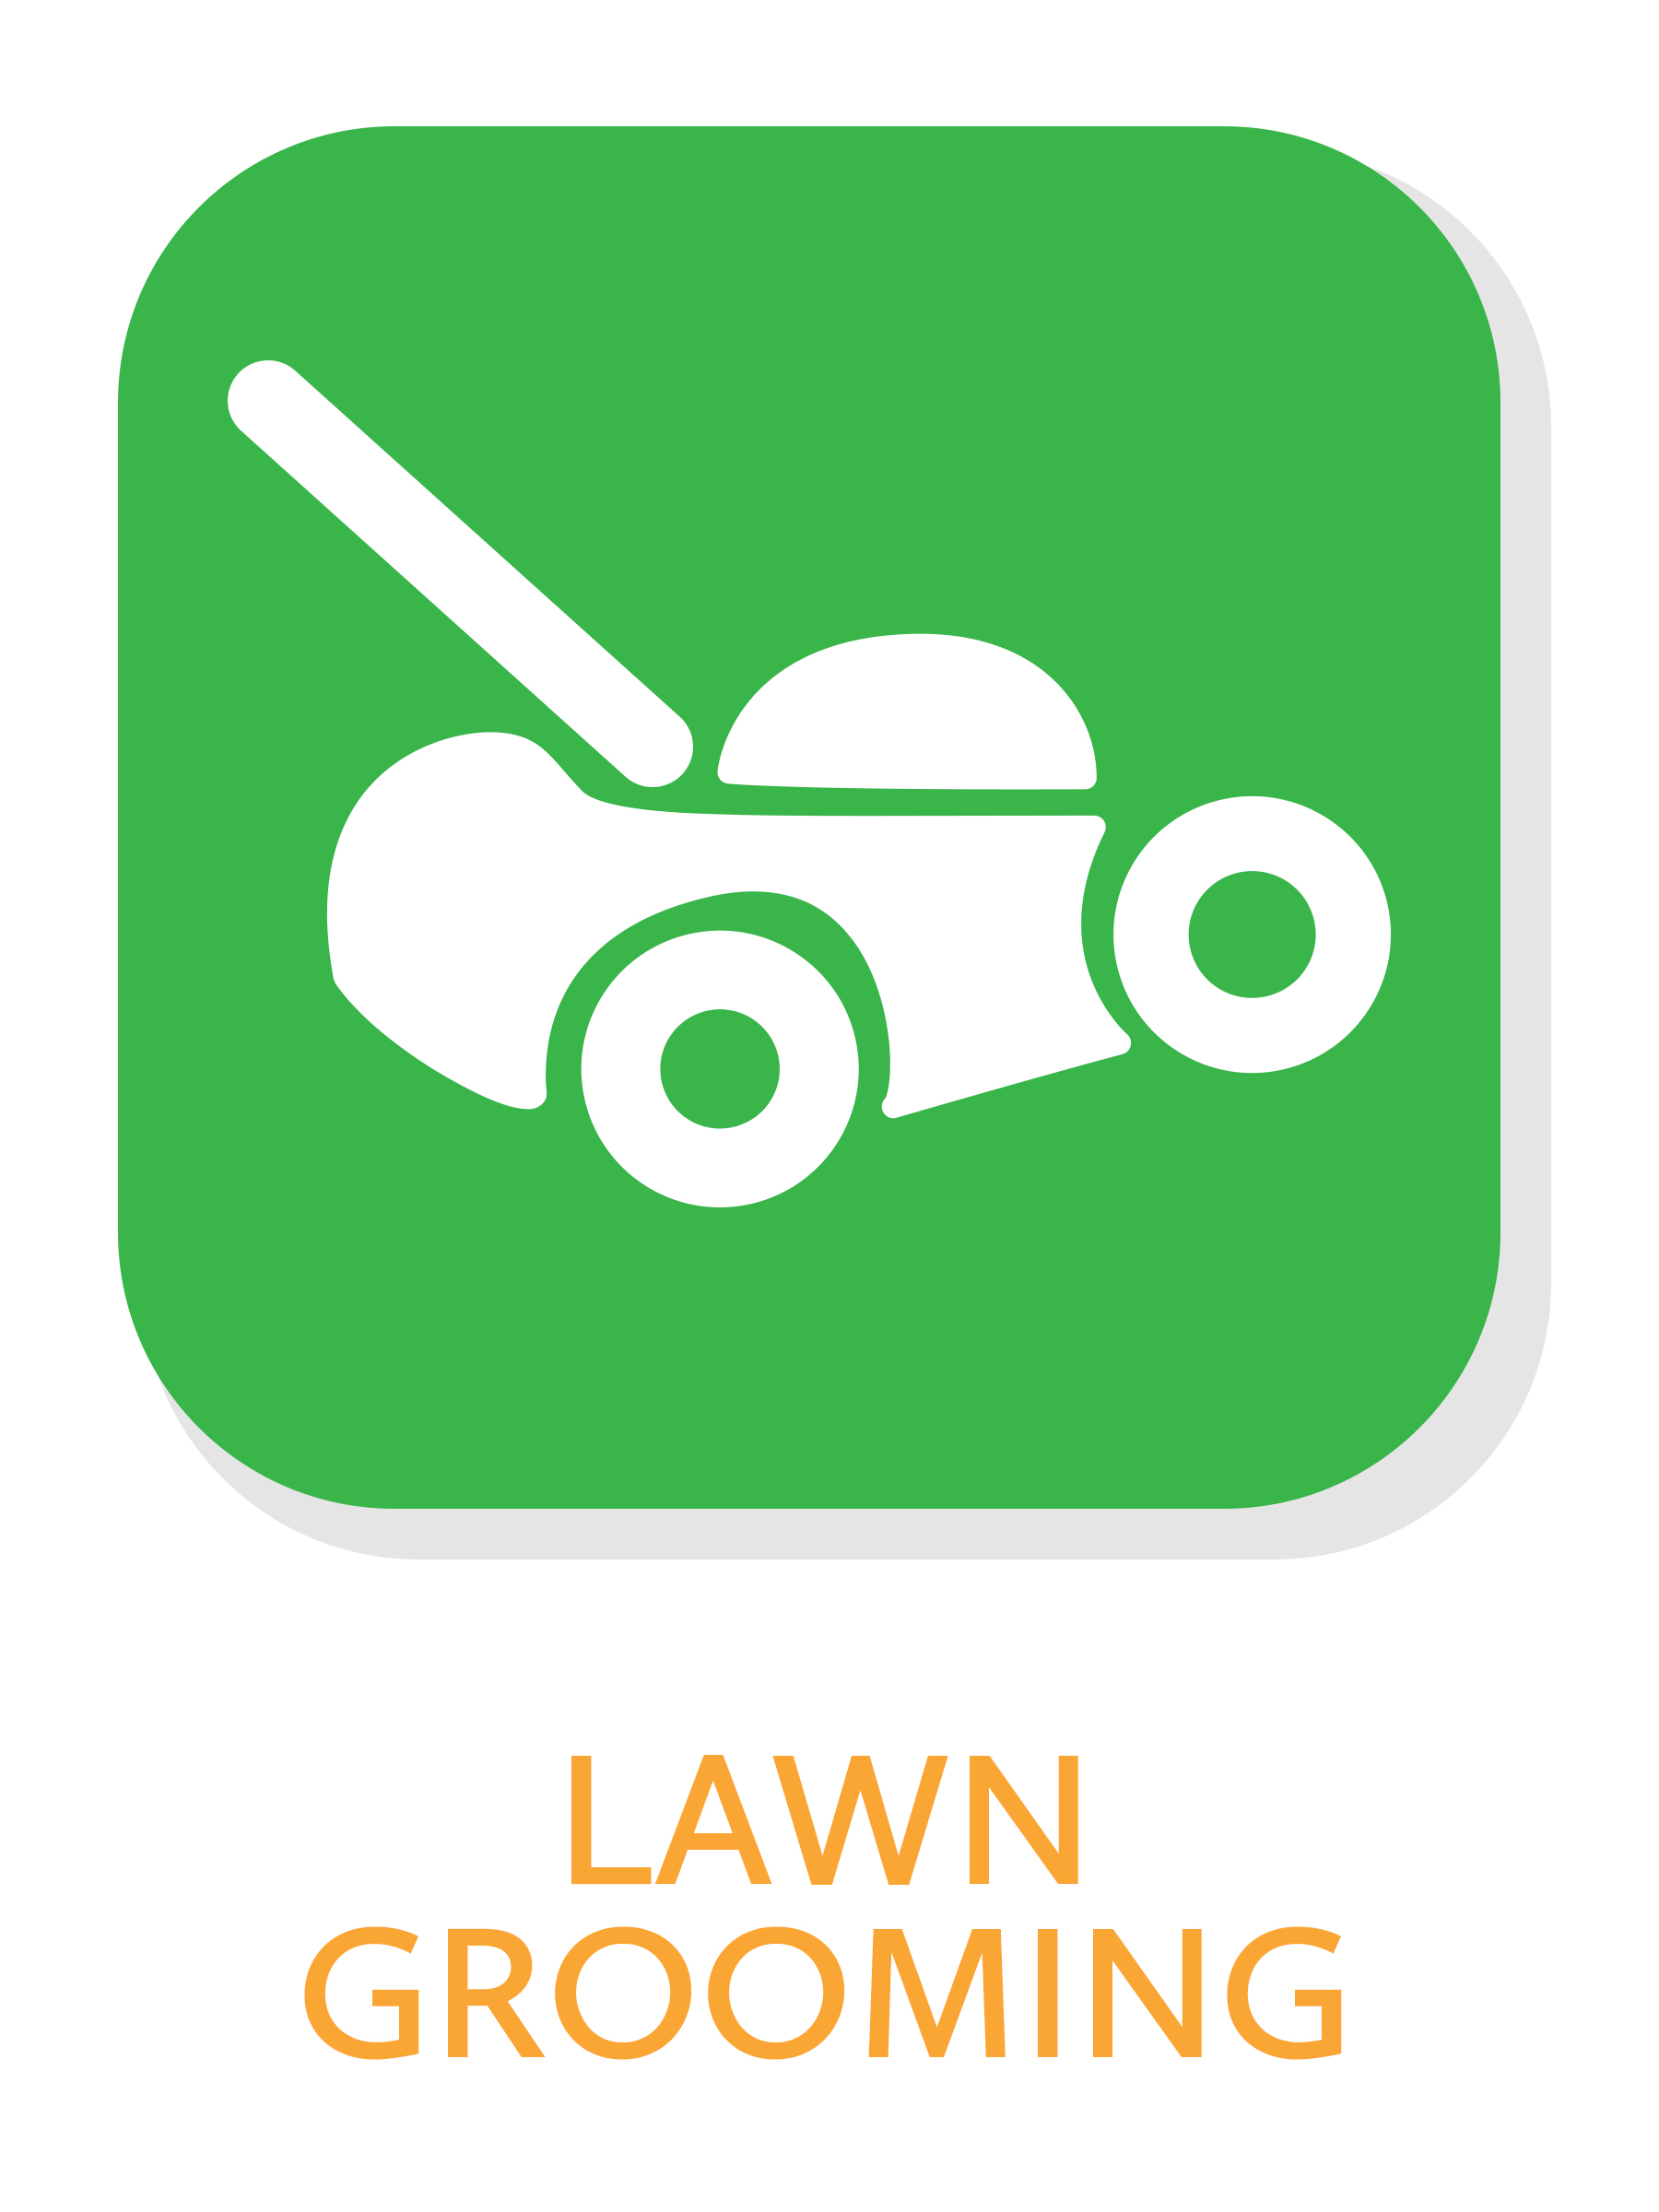 Simply Grass Icon (Lawn Grooming).jpg